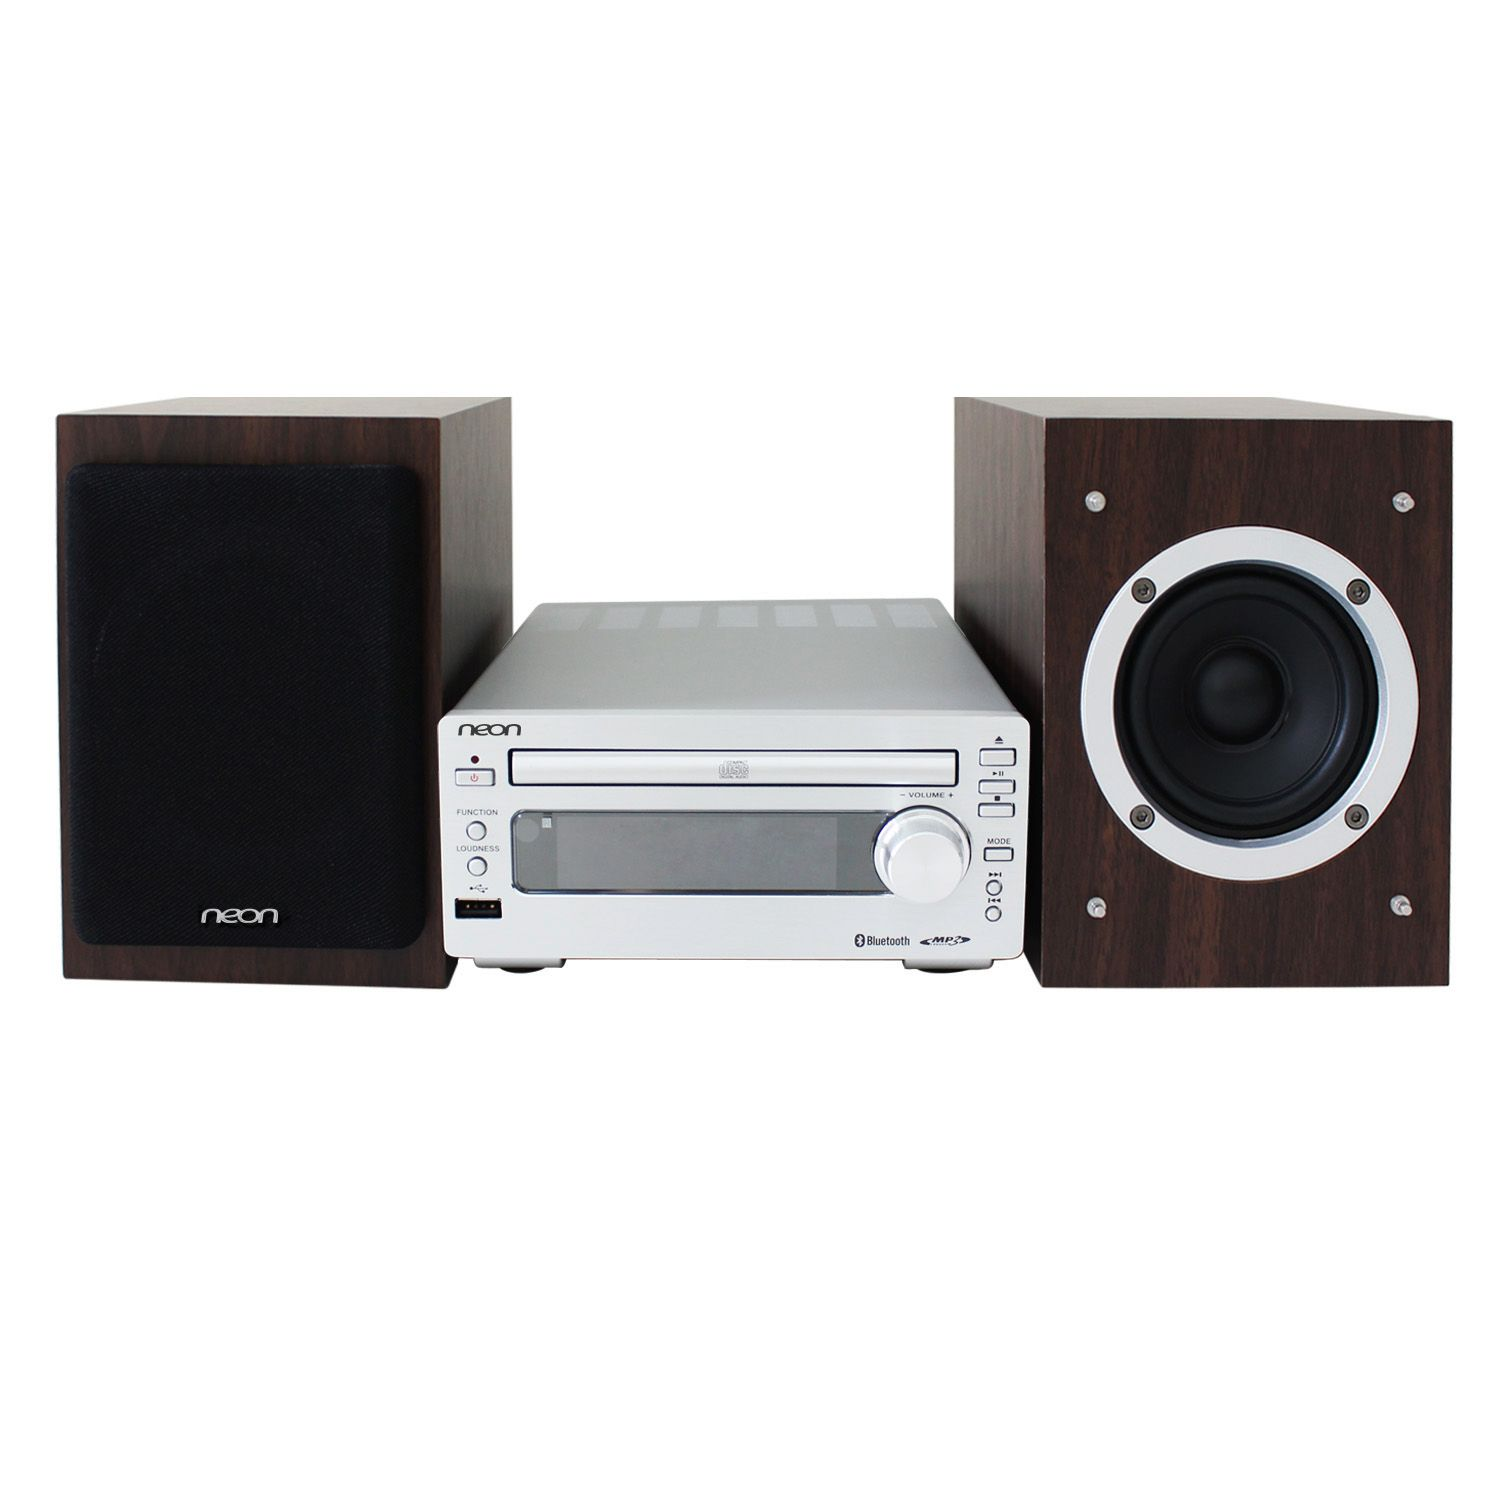 neon mcb1533 37 micro cd music system with bluetooth. Black Bedroom Furniture Sets. Home Design Ideas